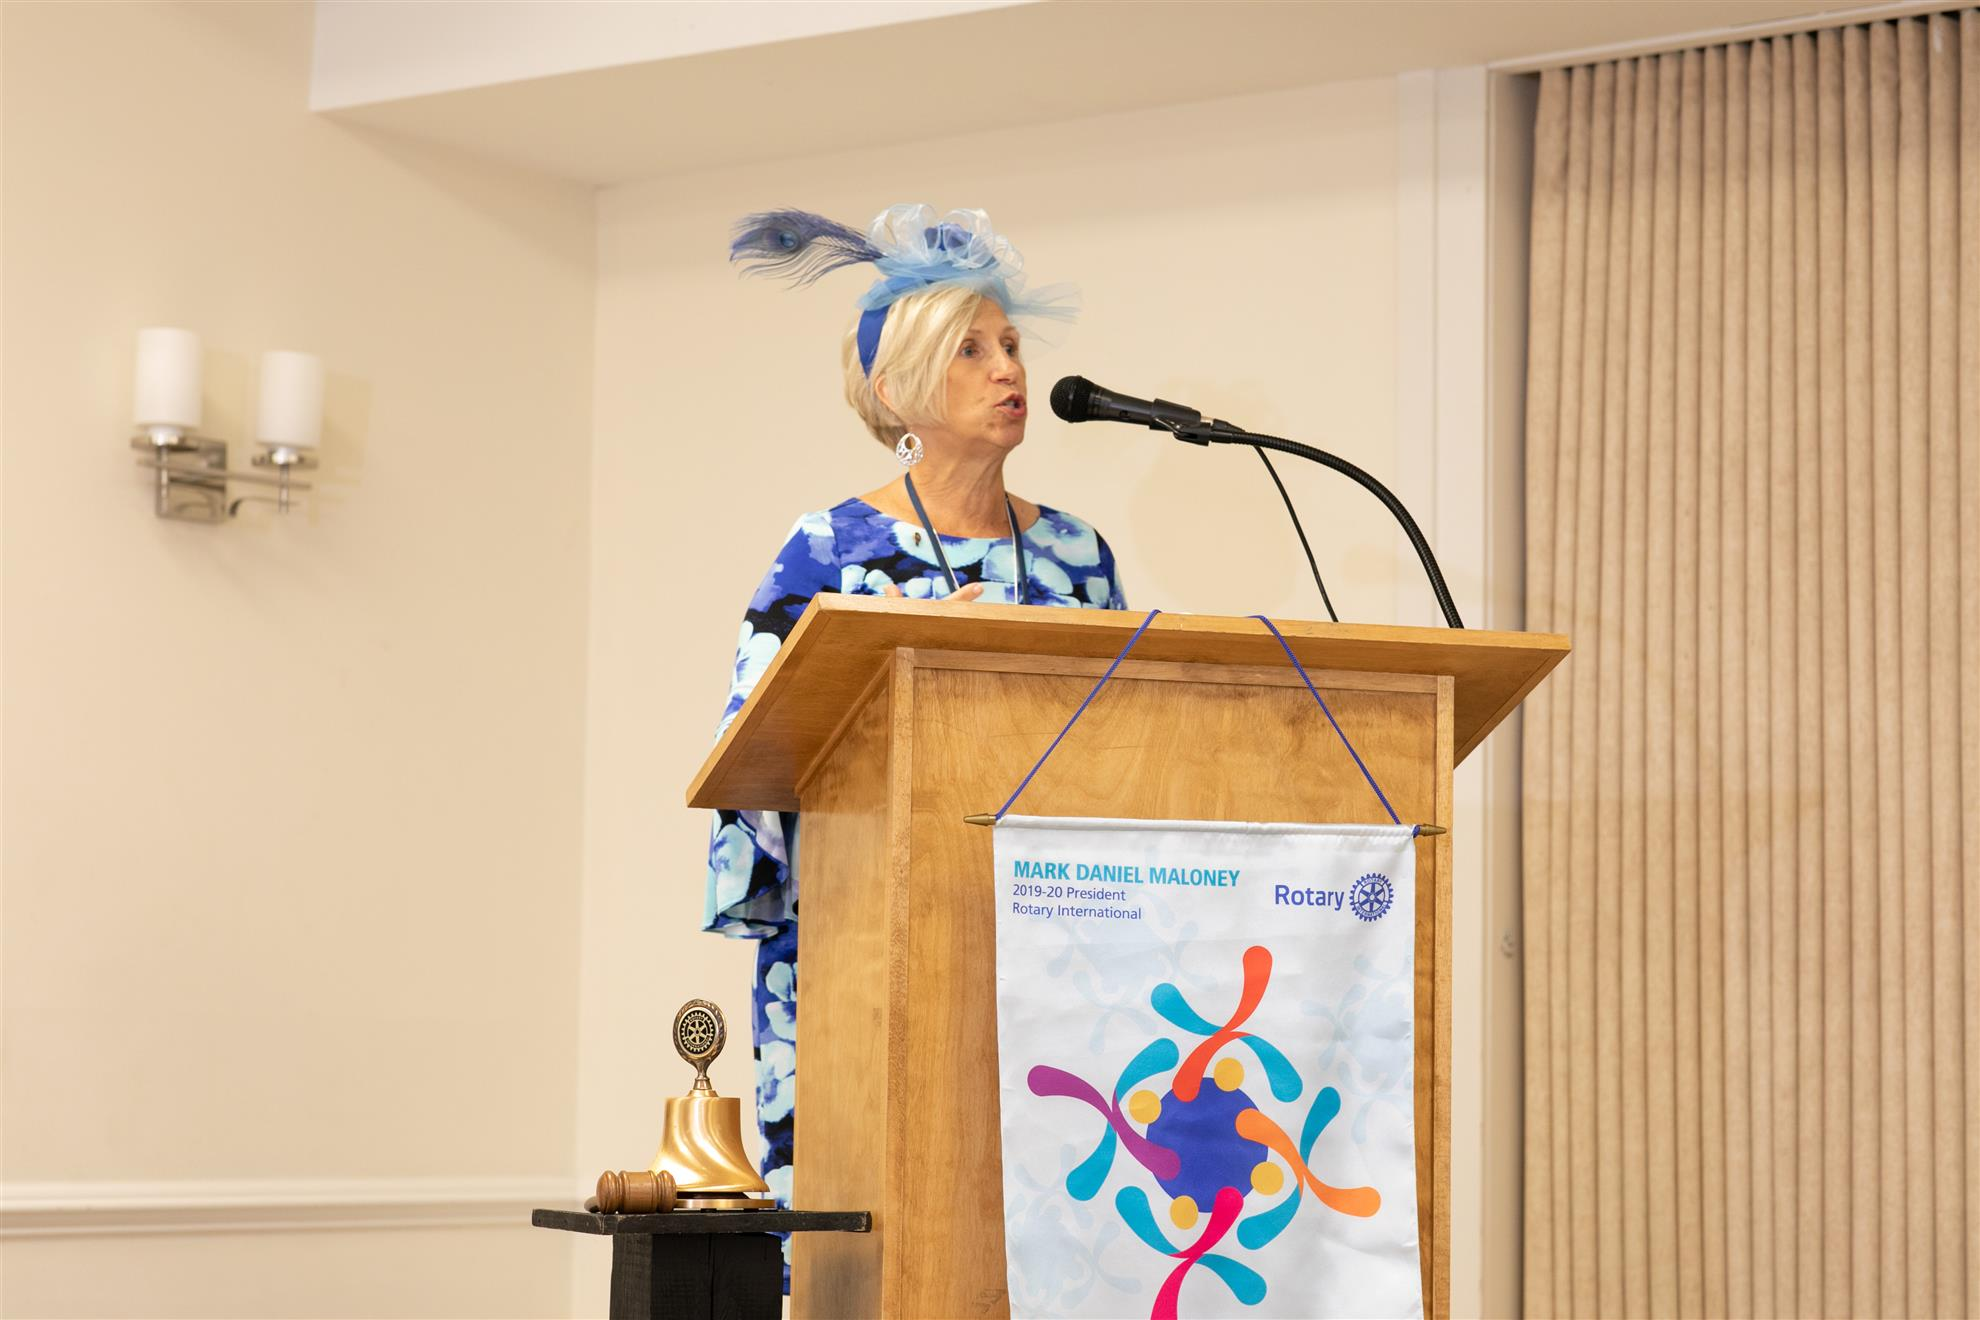 President Sue Totty presented her plans and vision for the 2019-2020 Rotary Year